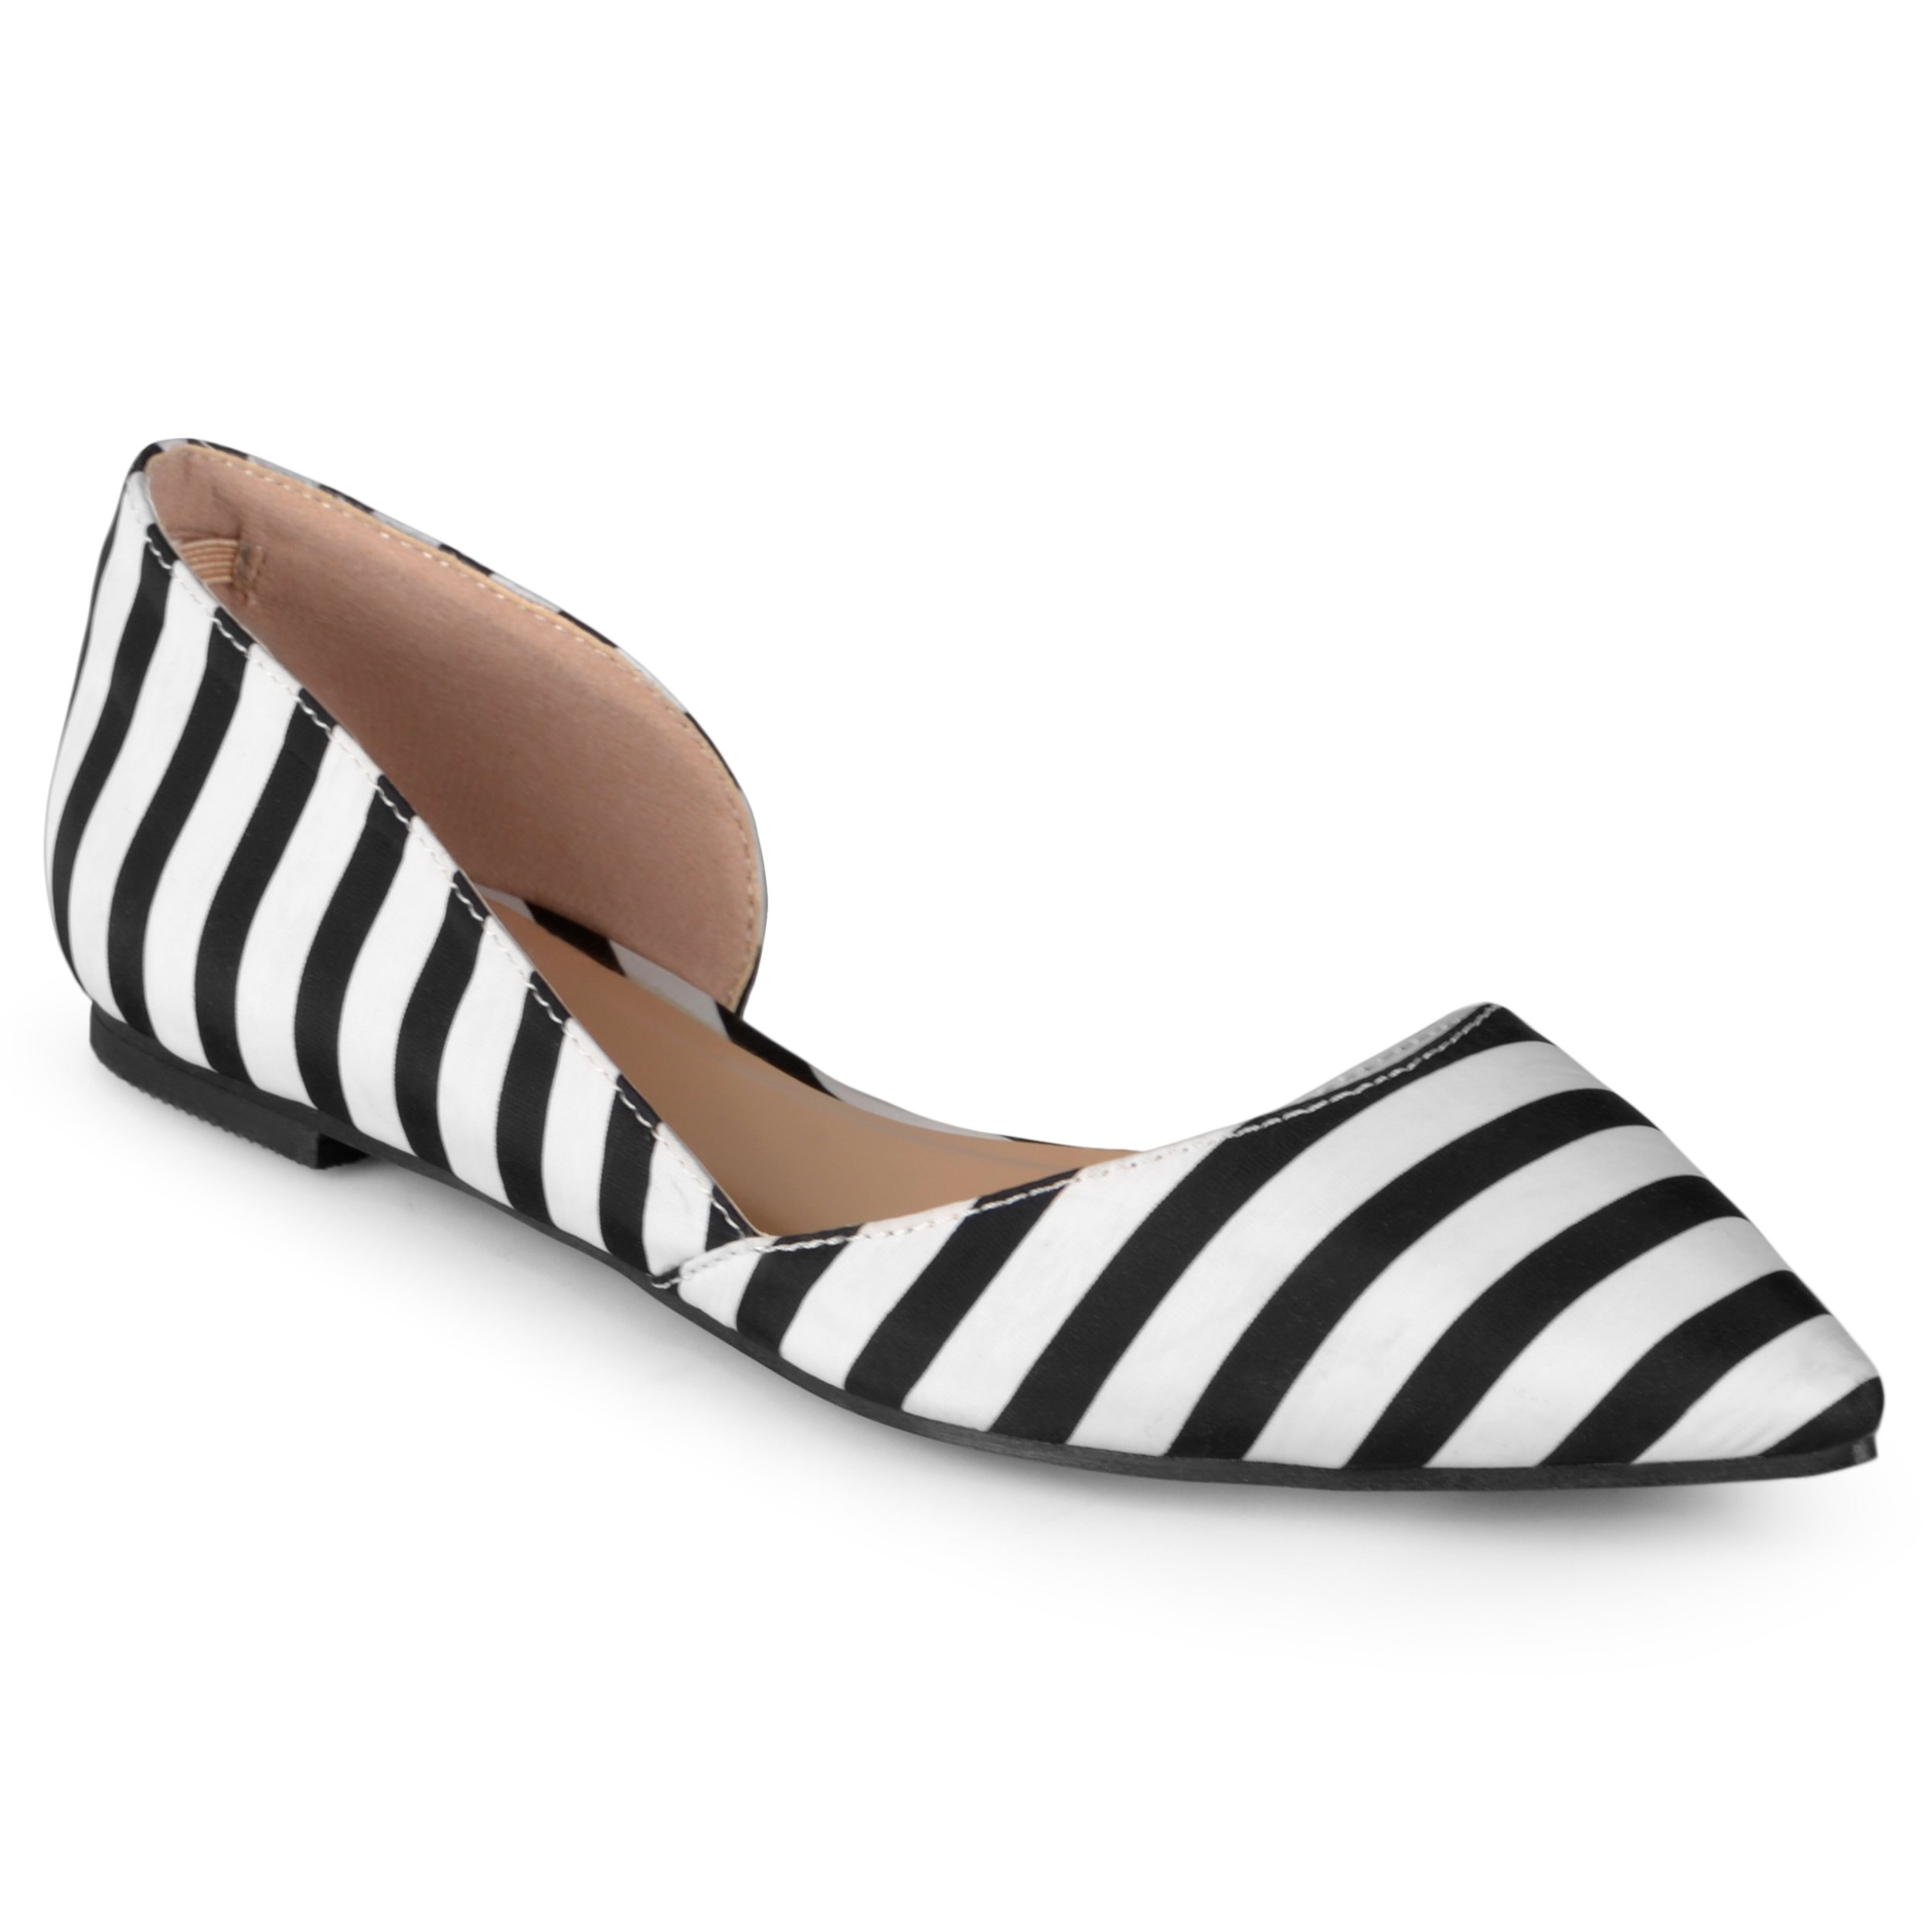 Journee Collection Womens Pointed Toe Cut-Out Flats Black Stripe, 8 Wide Width US